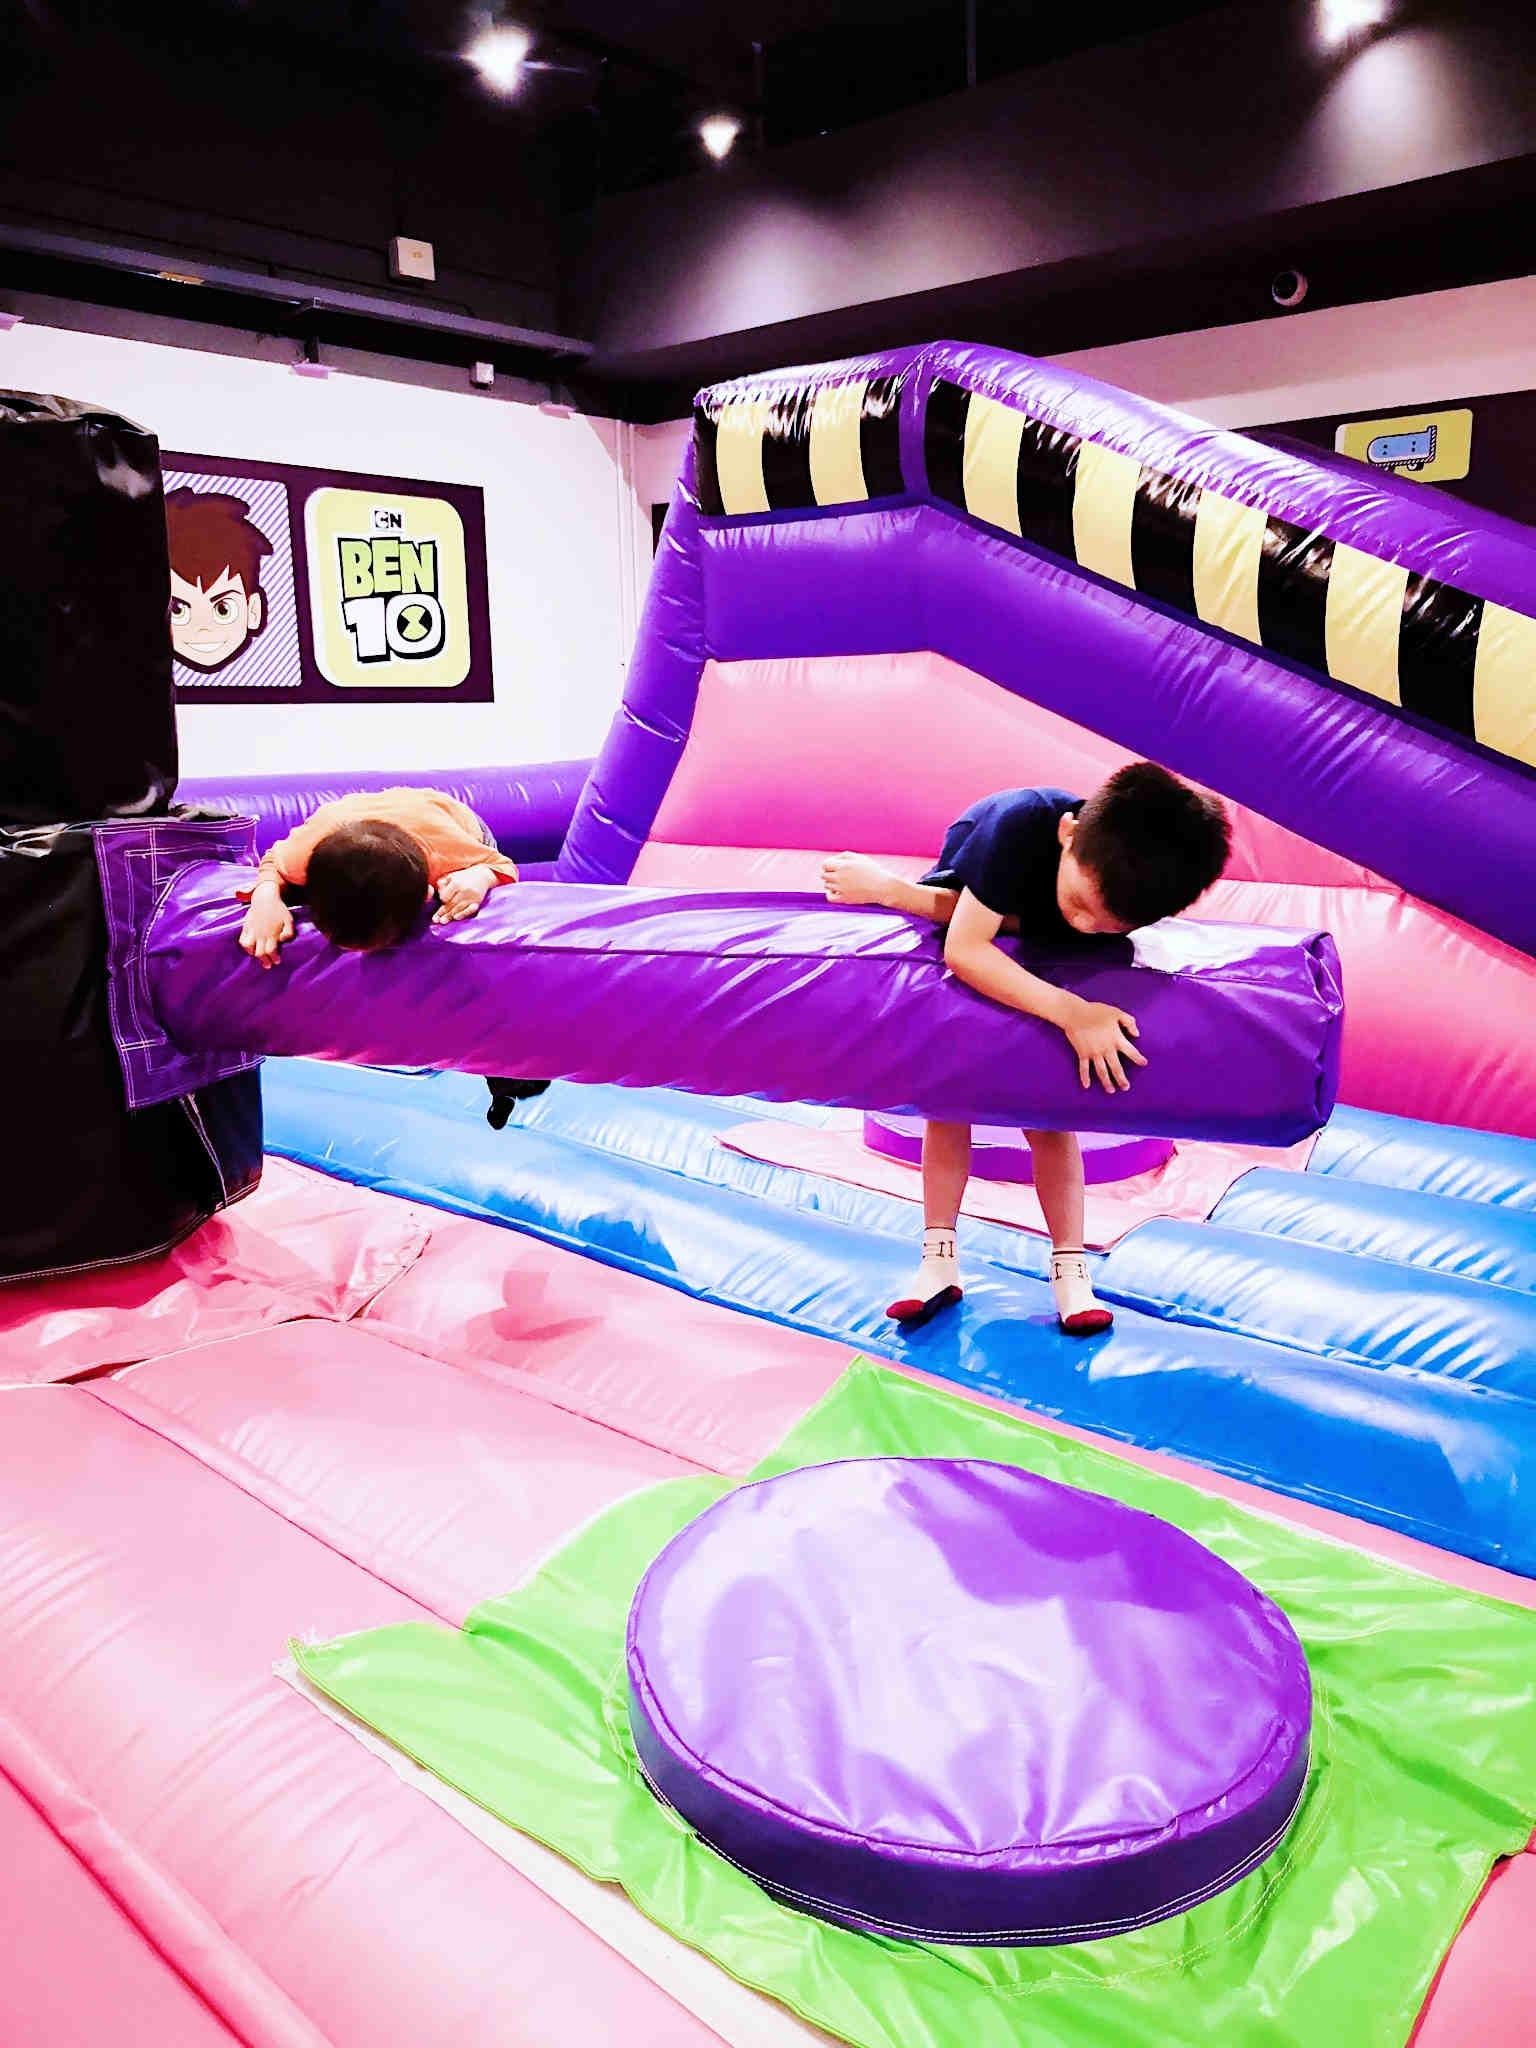 Bouncy inflatable area